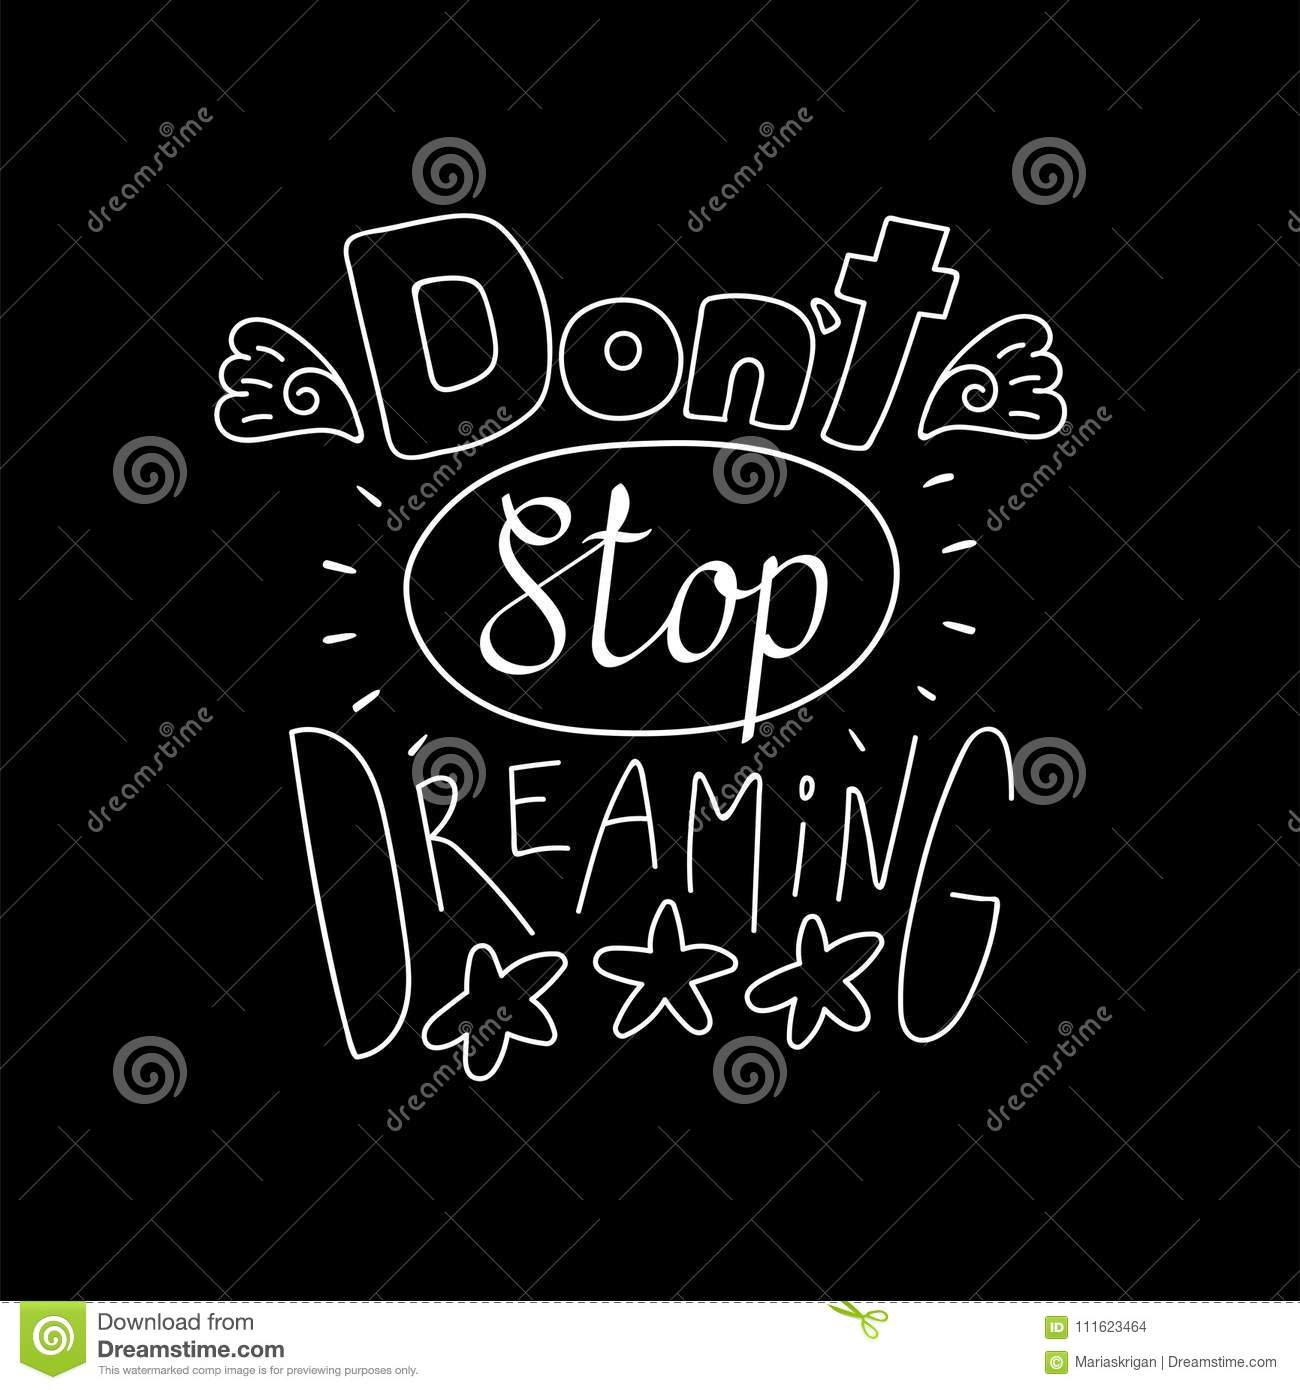 Inspirational Lettering Quote Stock Vector - Illustration of ...